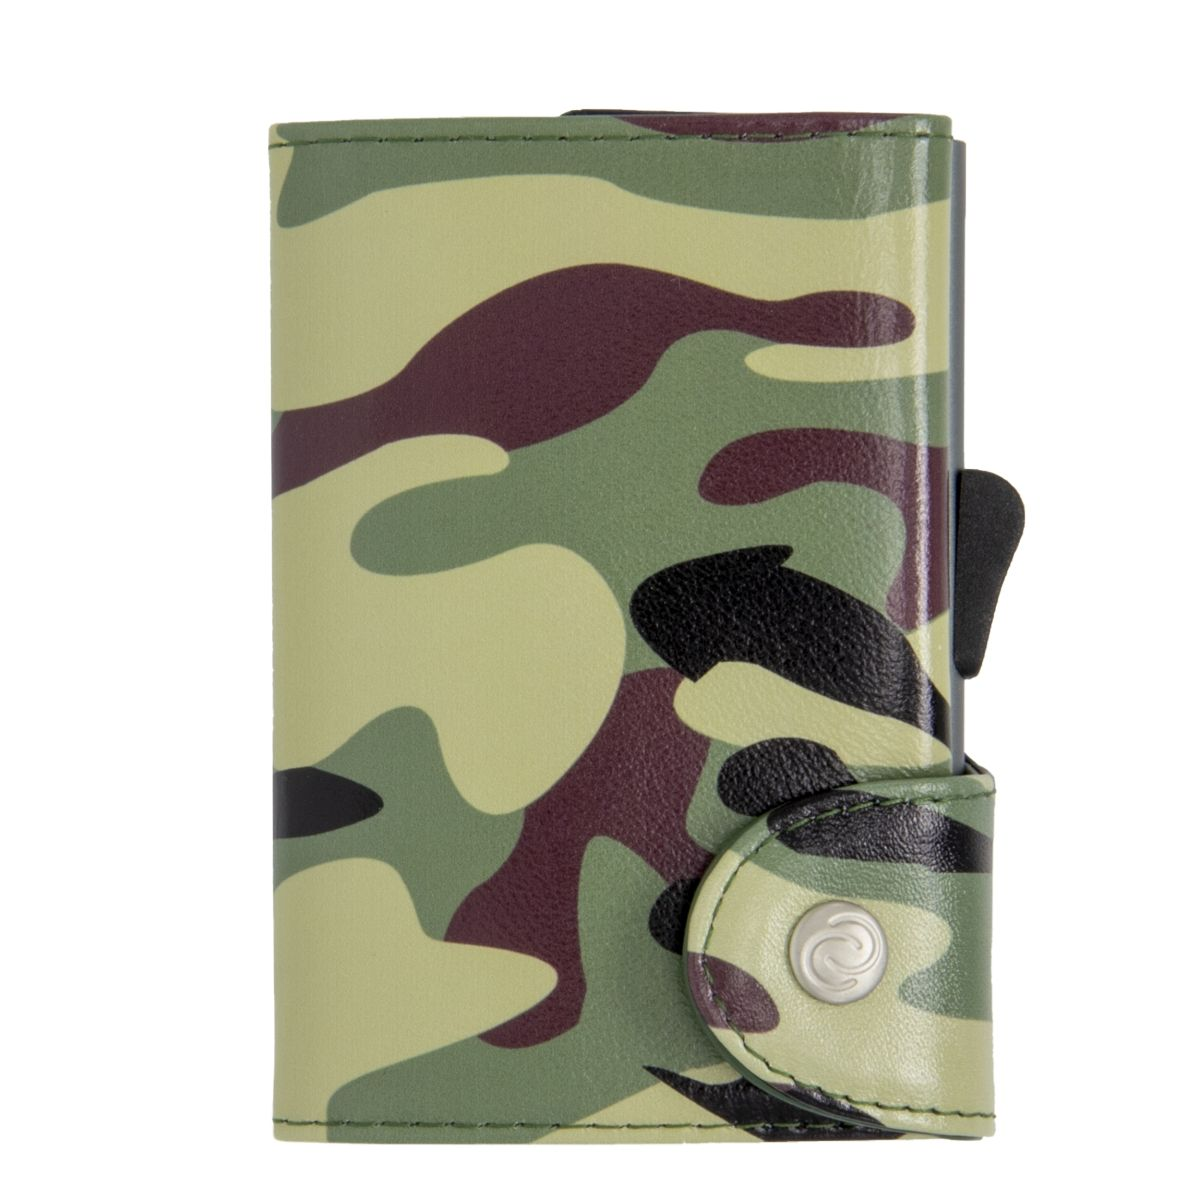 C-Secure Aluminum Card Holder with Genuine Leather - Camo Green